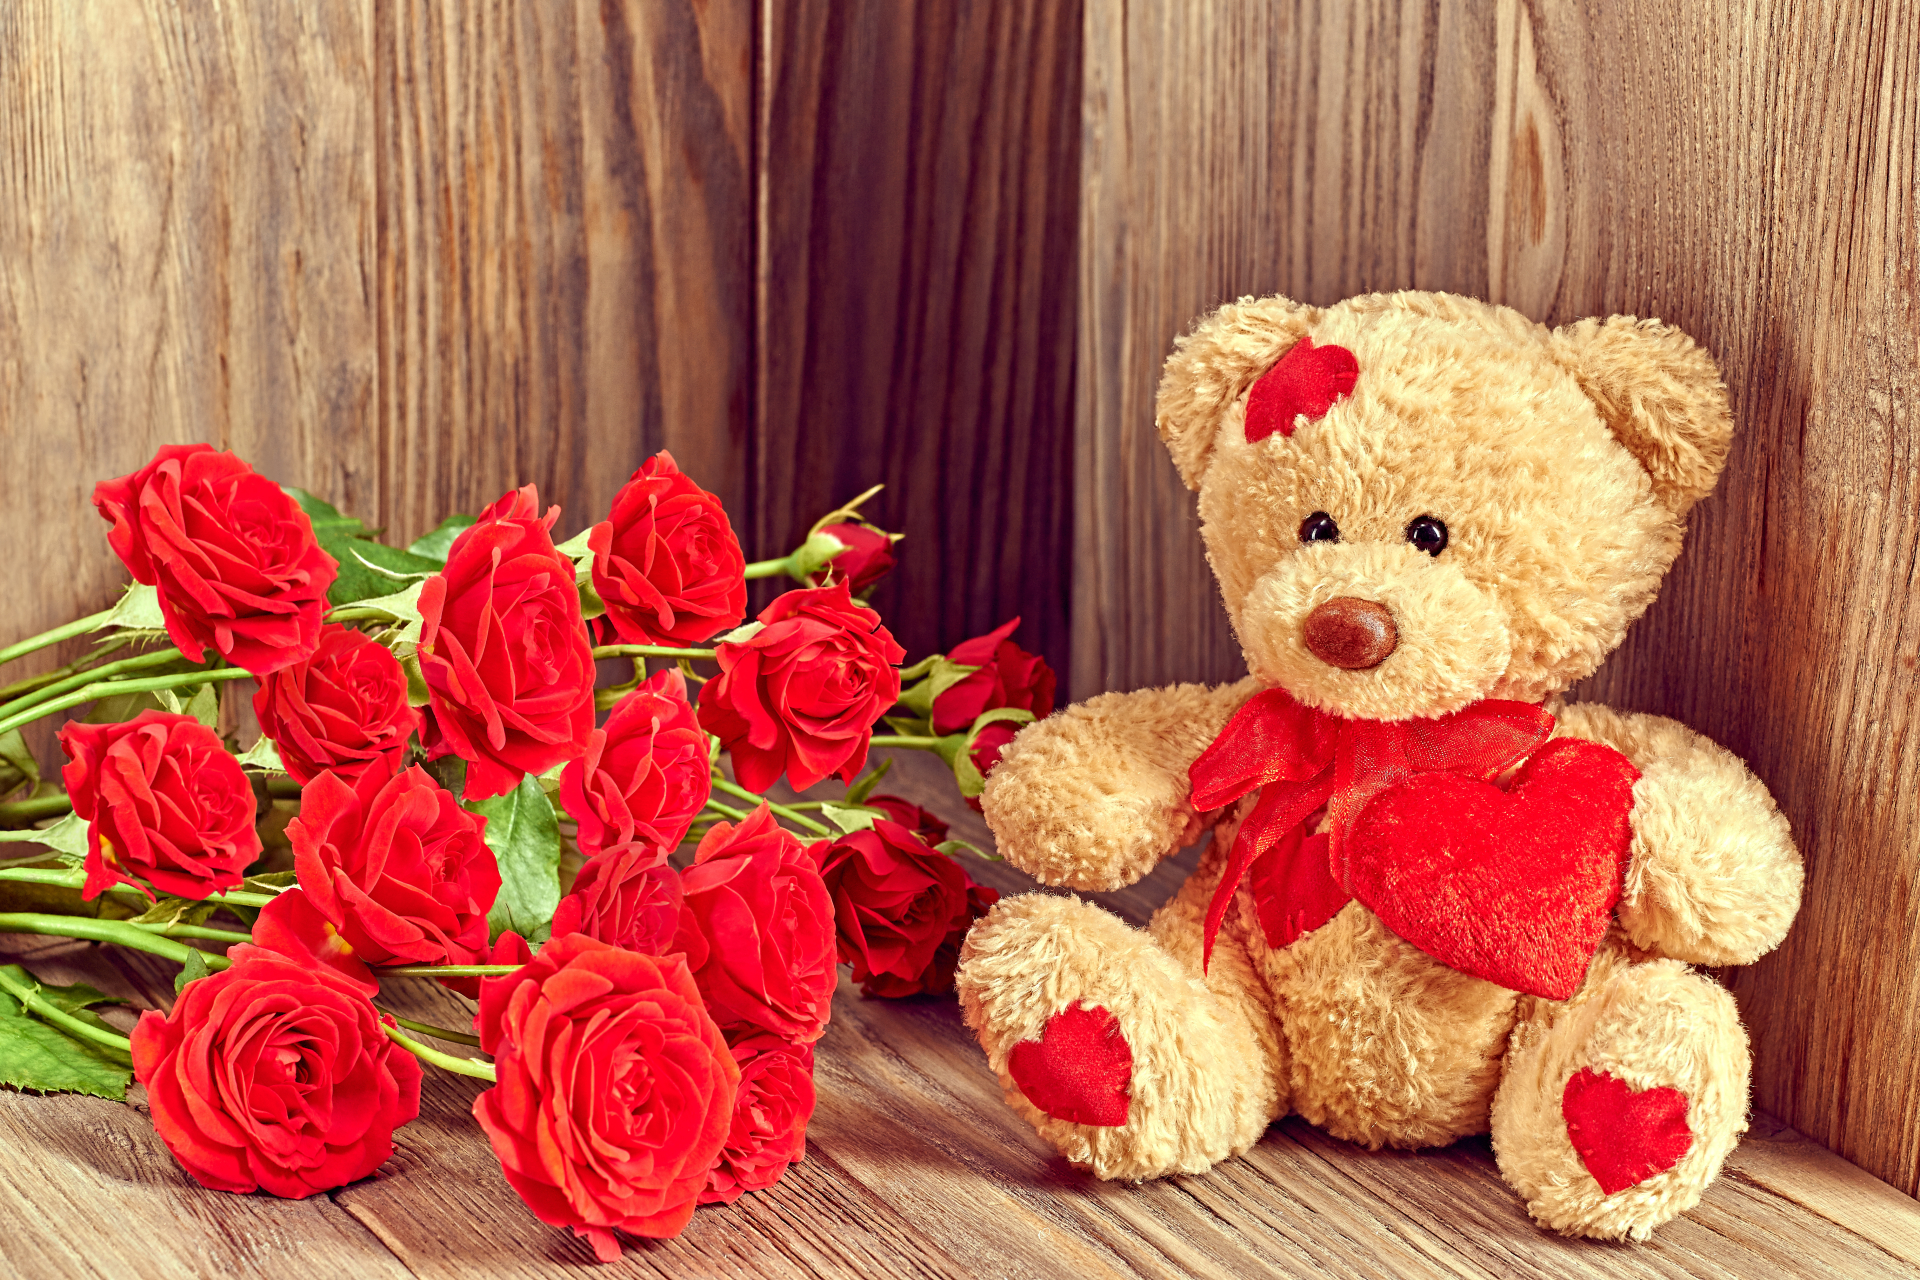 Red roses and cute teddy bear picture wallpaper hd red roses cute teddy bear picture background wallpaper izmirmasajfo